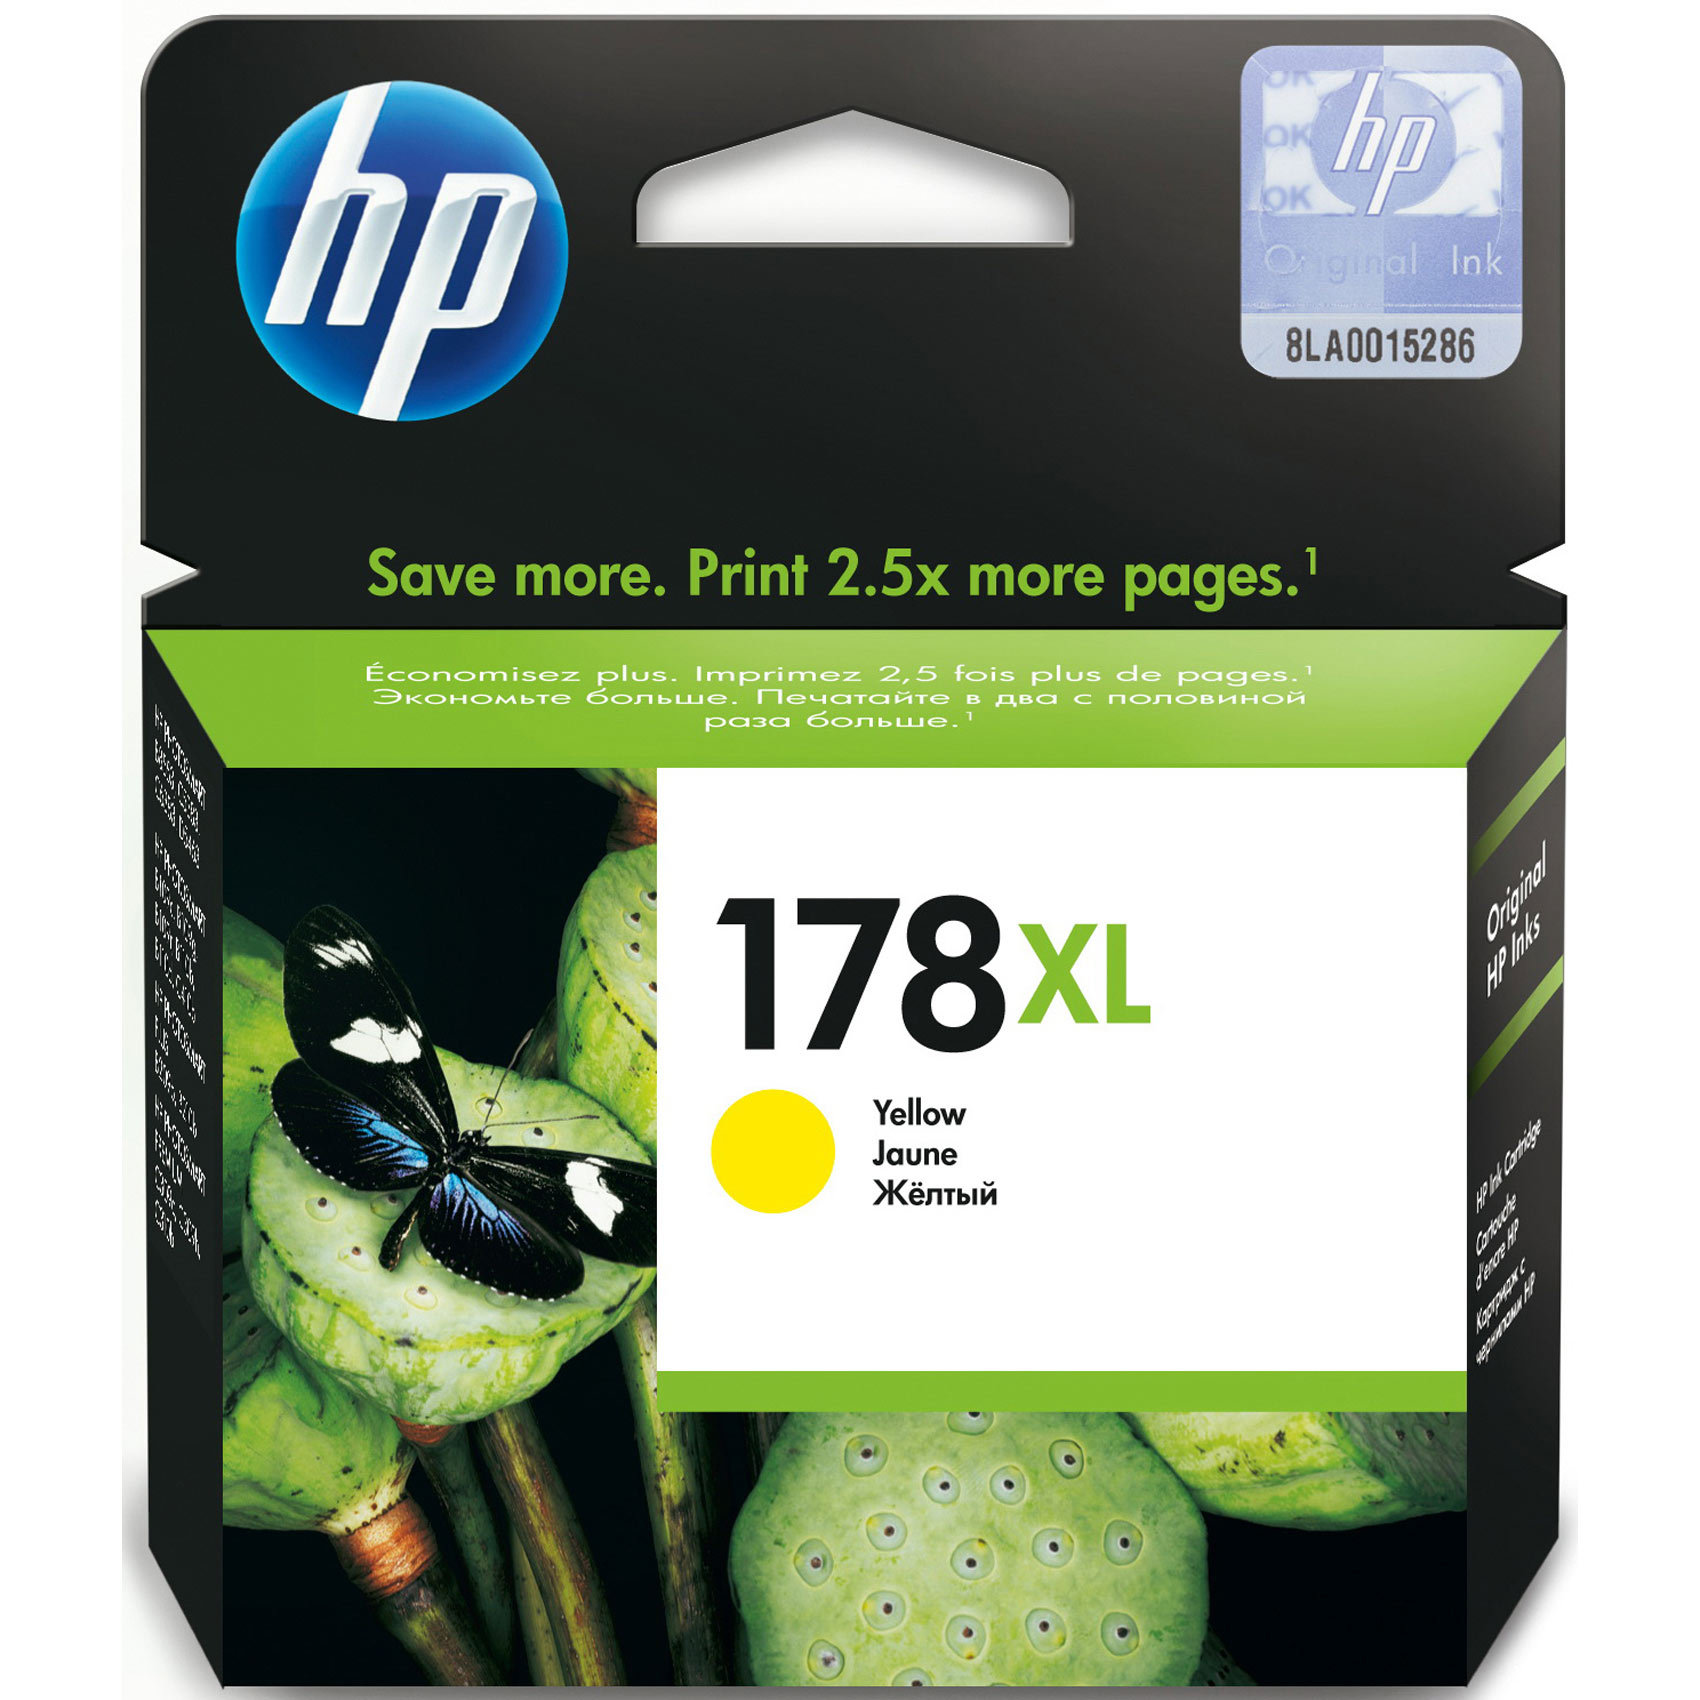 HP CART 178XL YELLOW